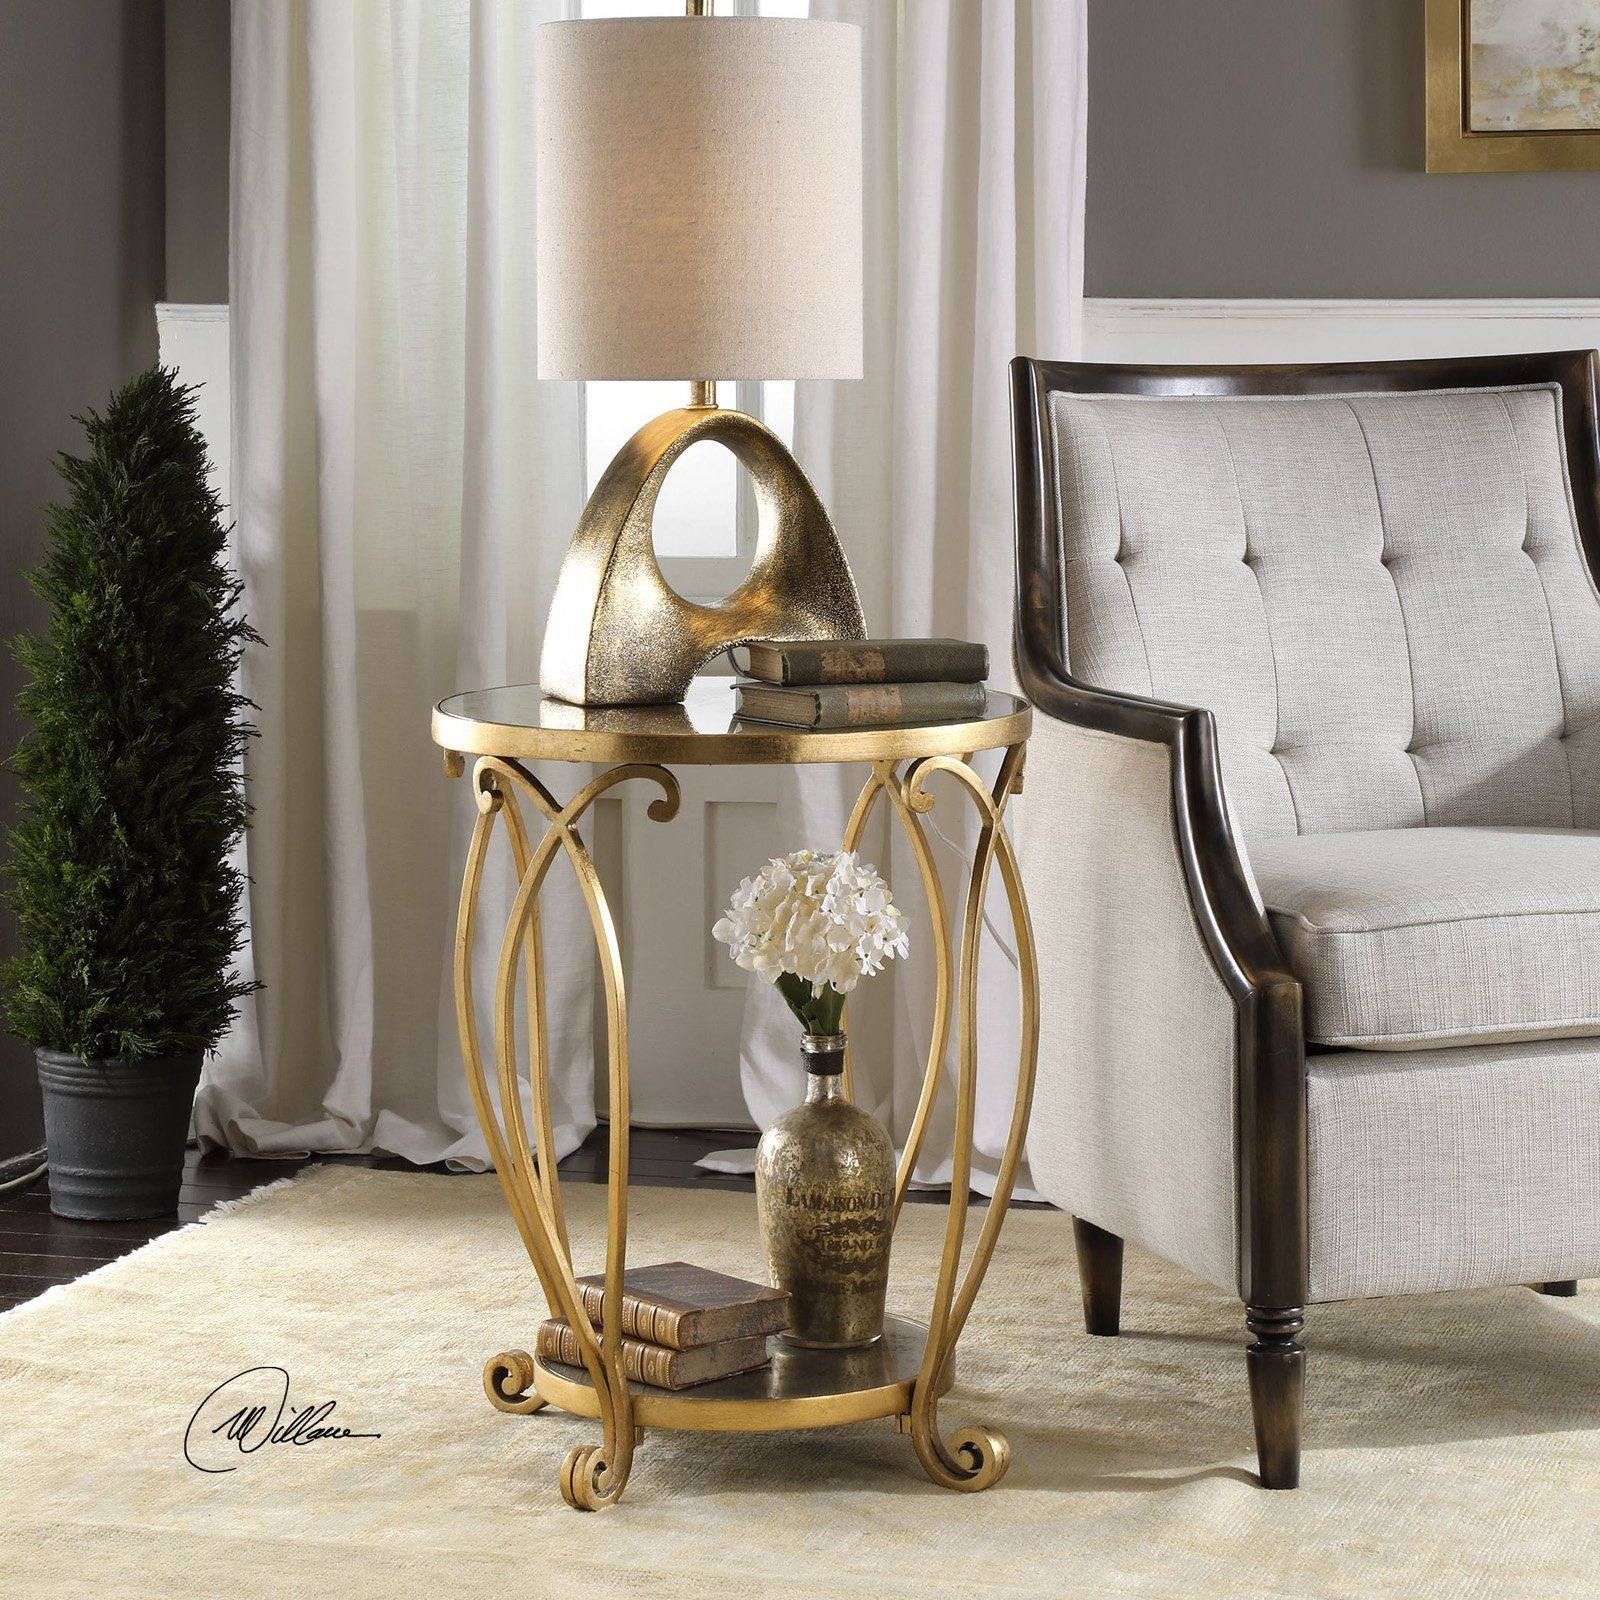 Uttermost Martella Gold Accent Table Gold Accent Table Living